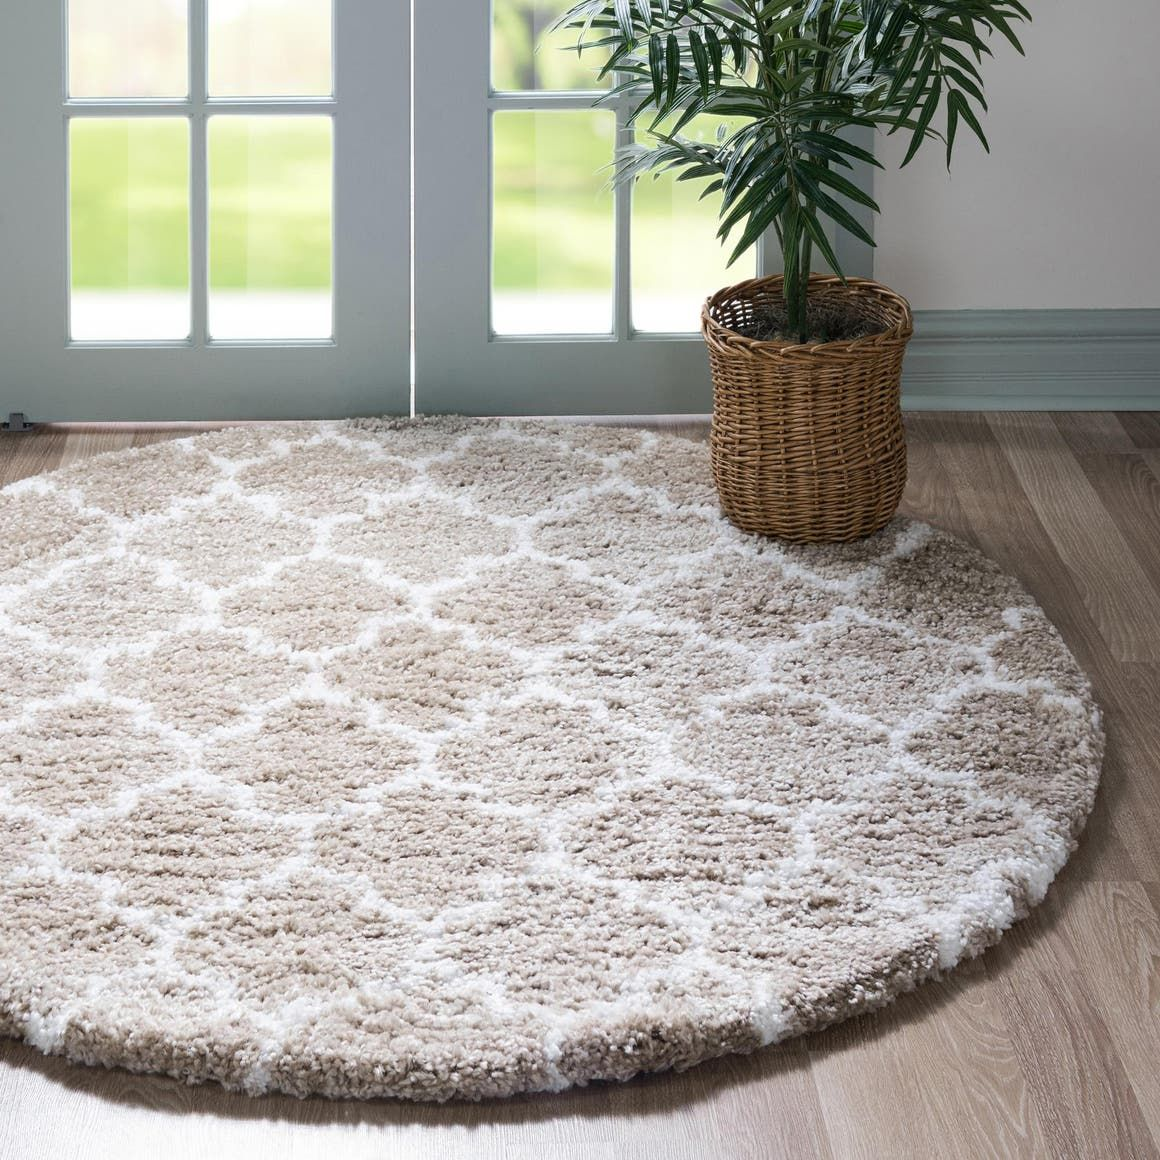 Morroccan Shag Taupe 3 Ft Round Area Rug In 2020 Rugs Round